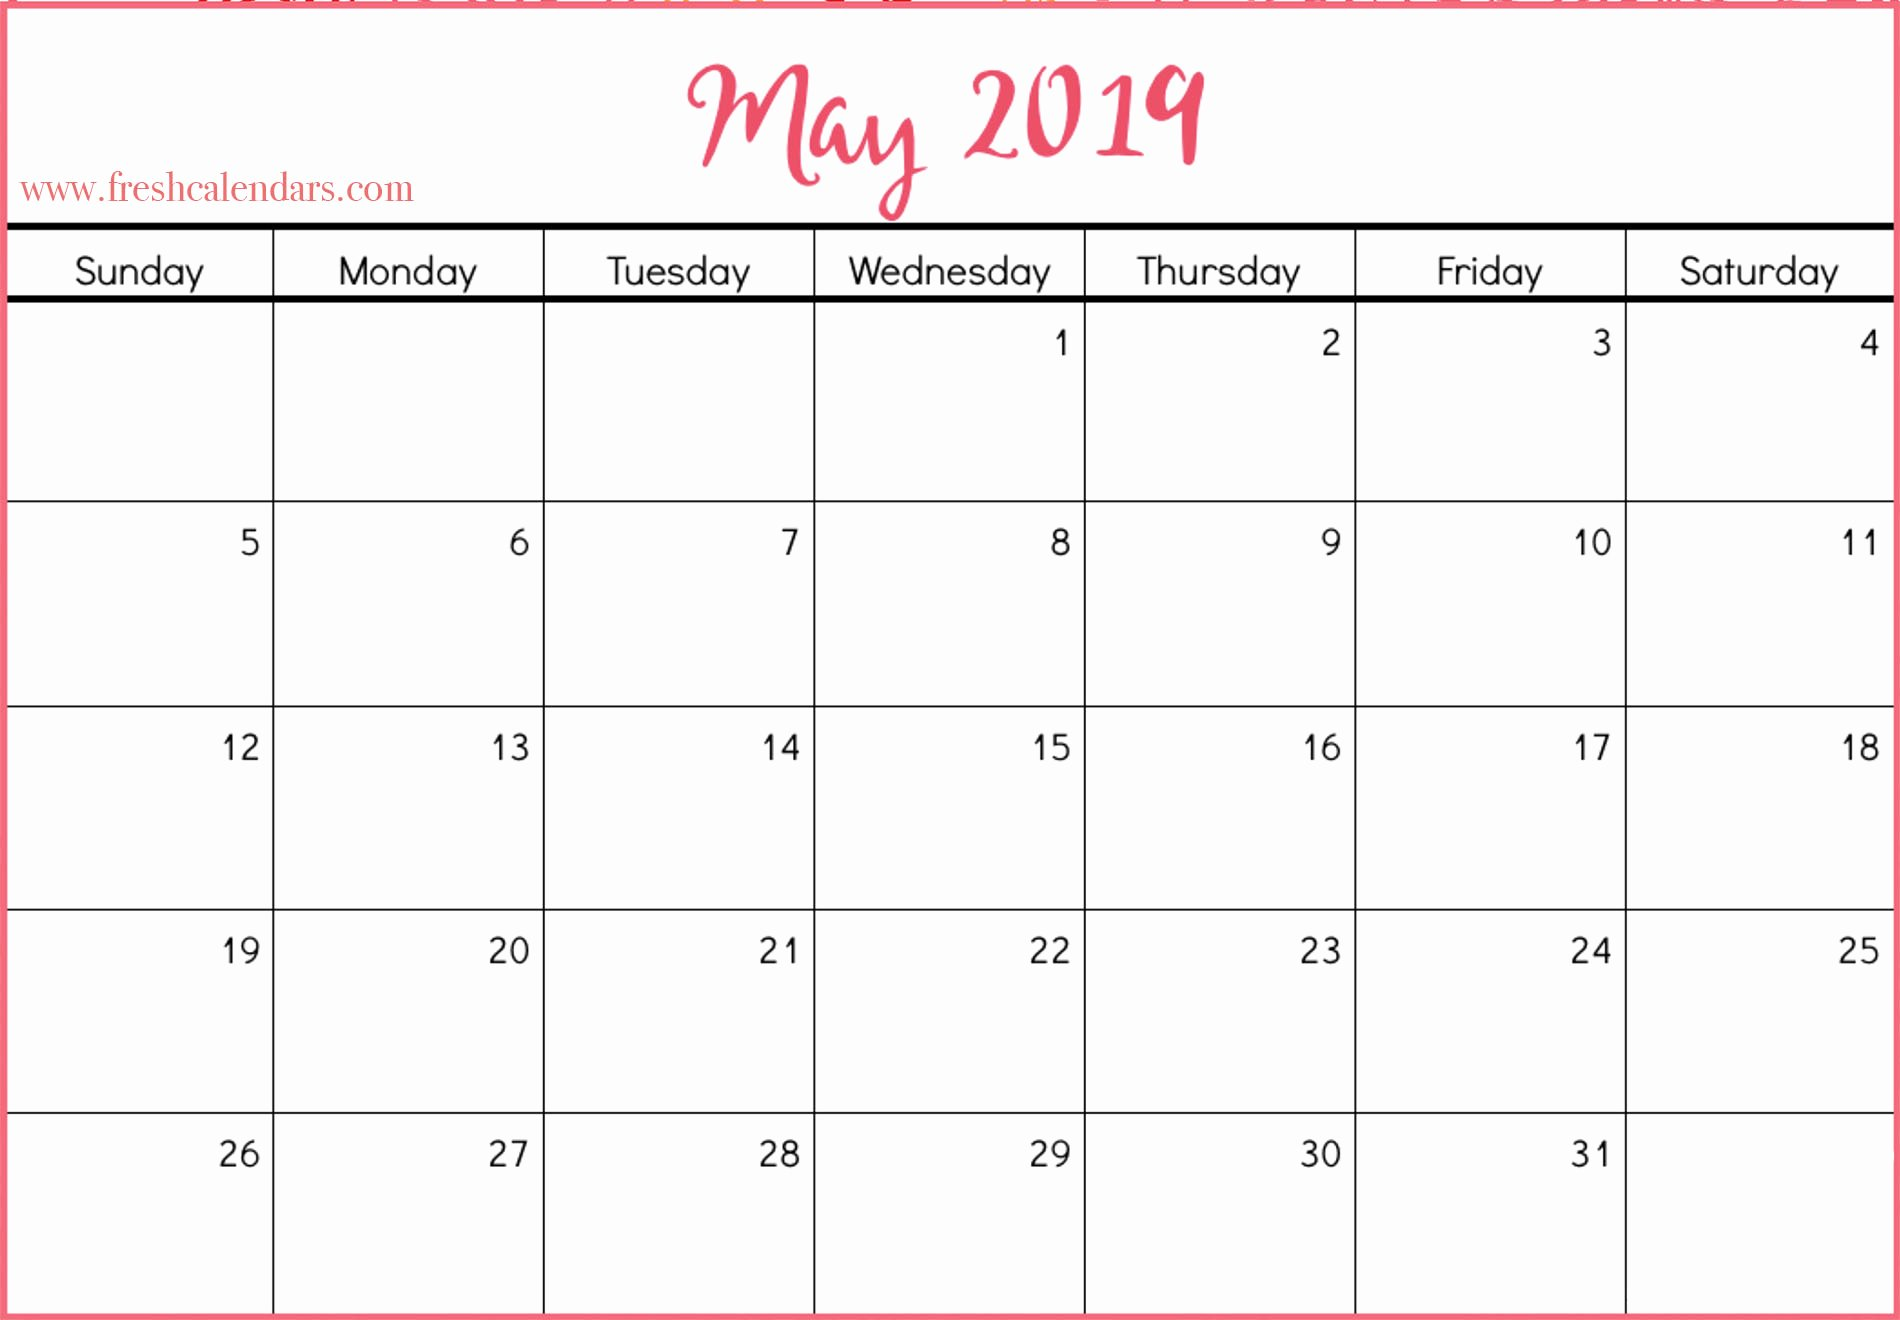 Microsoft Calendar Templates 2019 Unique May 2019 Calendar Printable